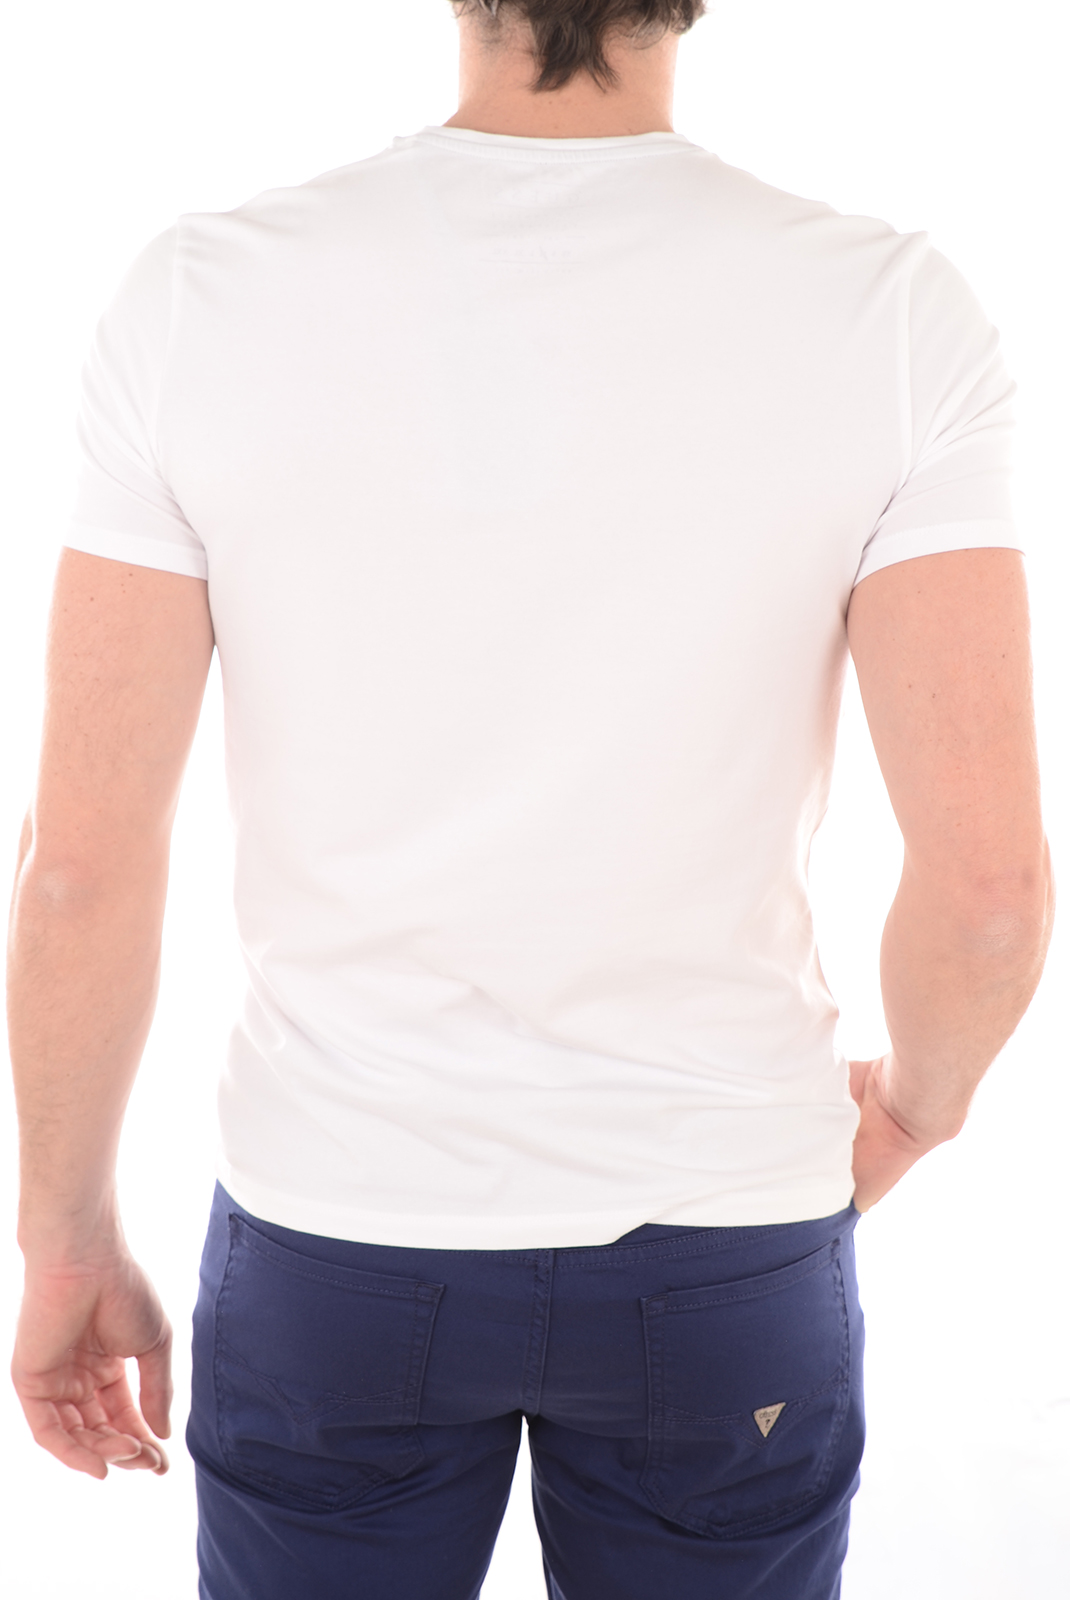 Tee-shirts  Guess jeans M44I01J1300 A009 BLANC